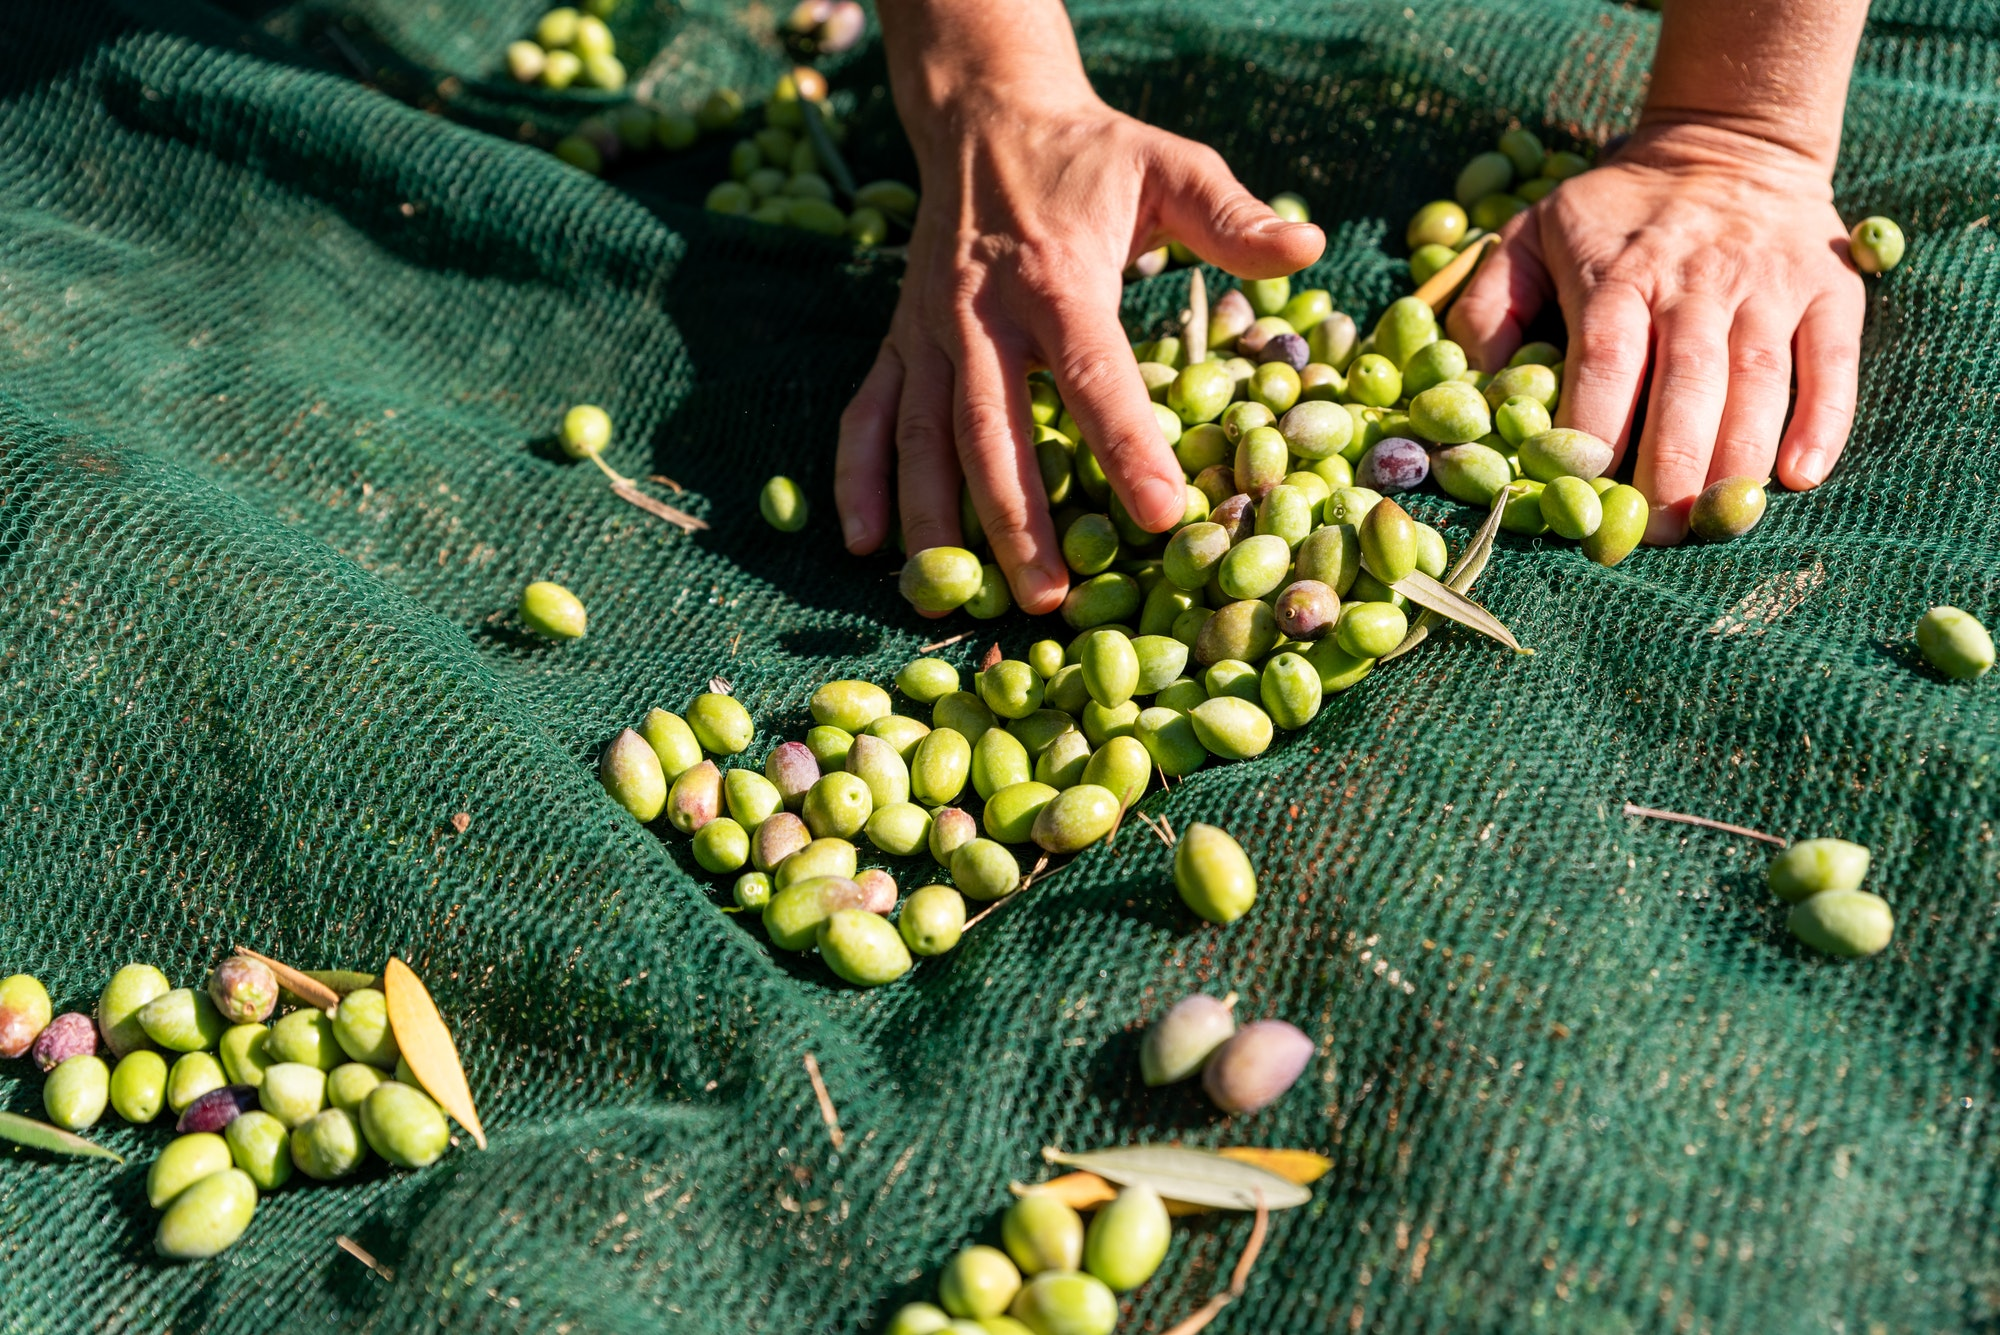 Woman hands are picking fallen olives from nets under olive trees